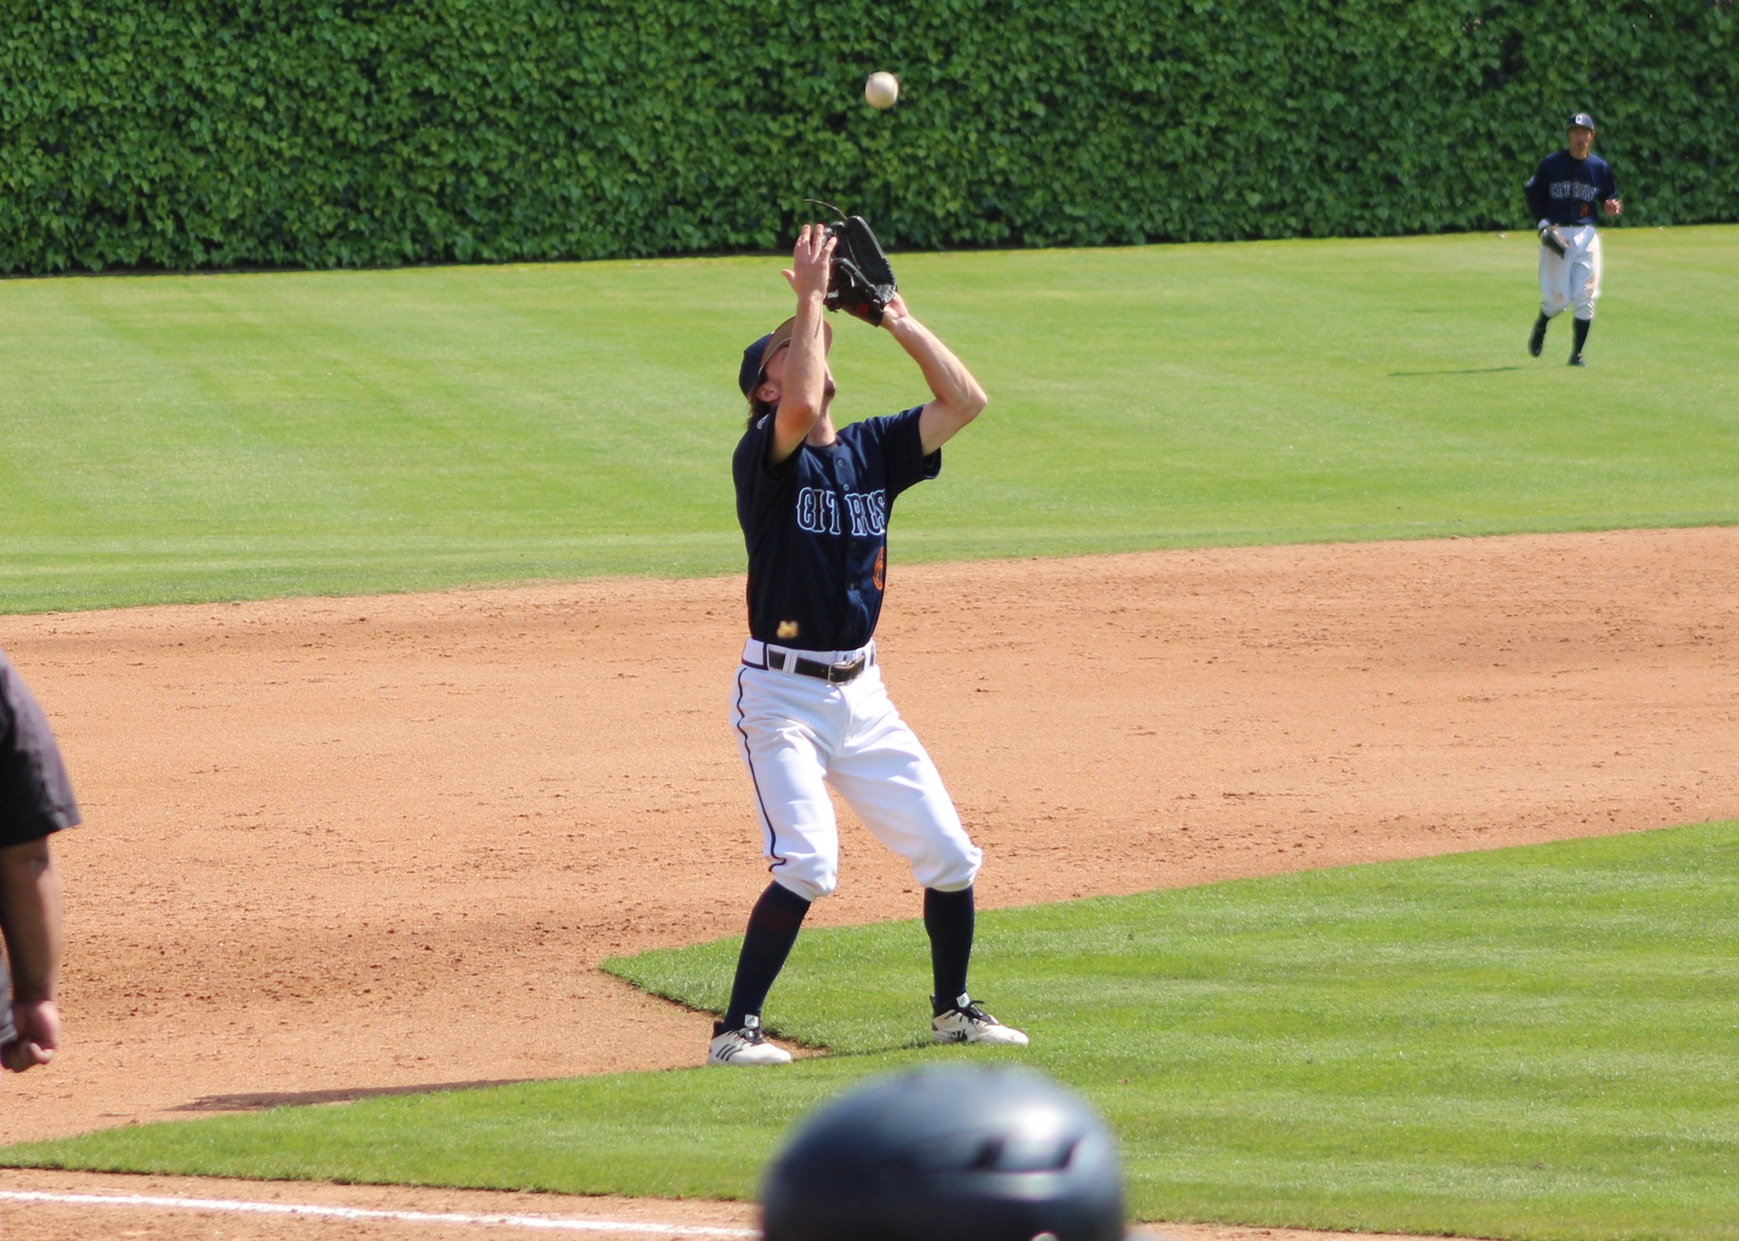 Ethan Cummins catches a pop fly at 3rd base. Image: Richard Miranda, II